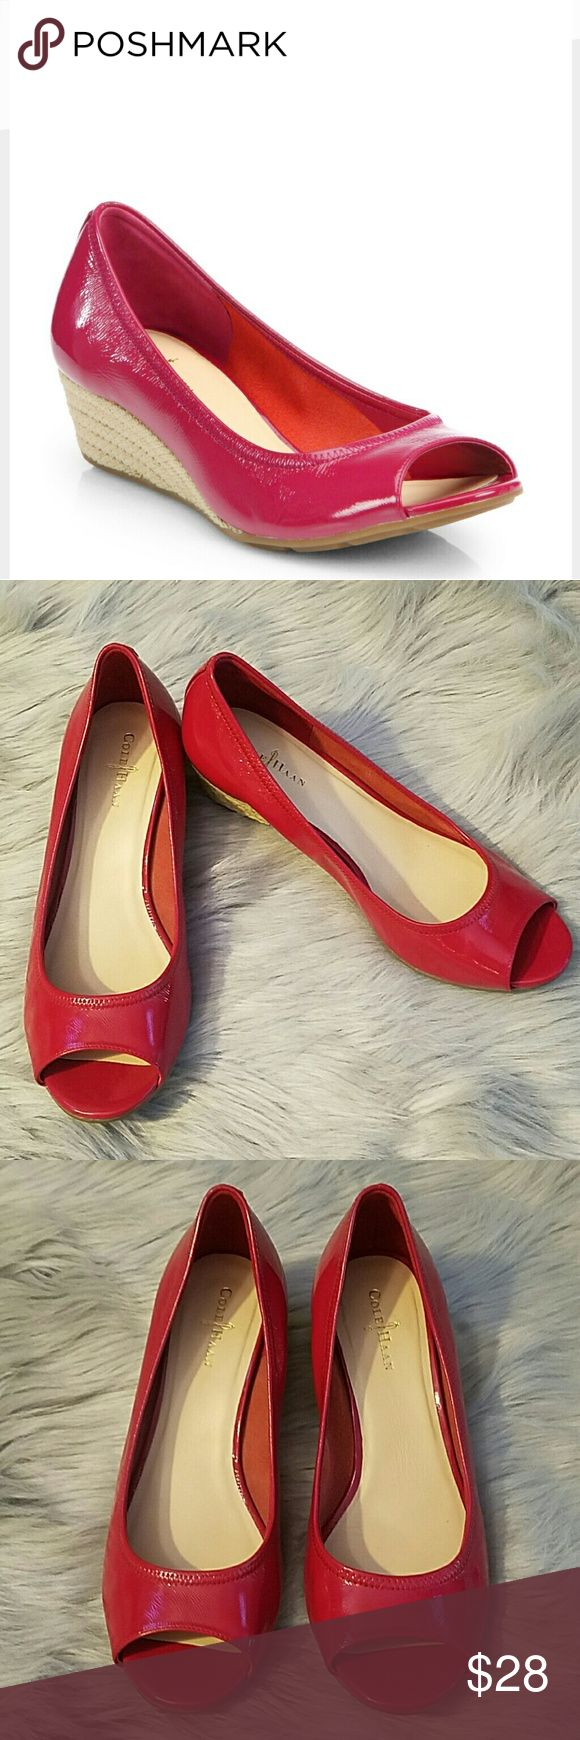 Cole Haan Patent Leather Peep Toe Wedges - 6.5 Excellent condition. Size 6.5. Cole Haan Air Tali Wedge Pump. Cole Haan Shoes Heels